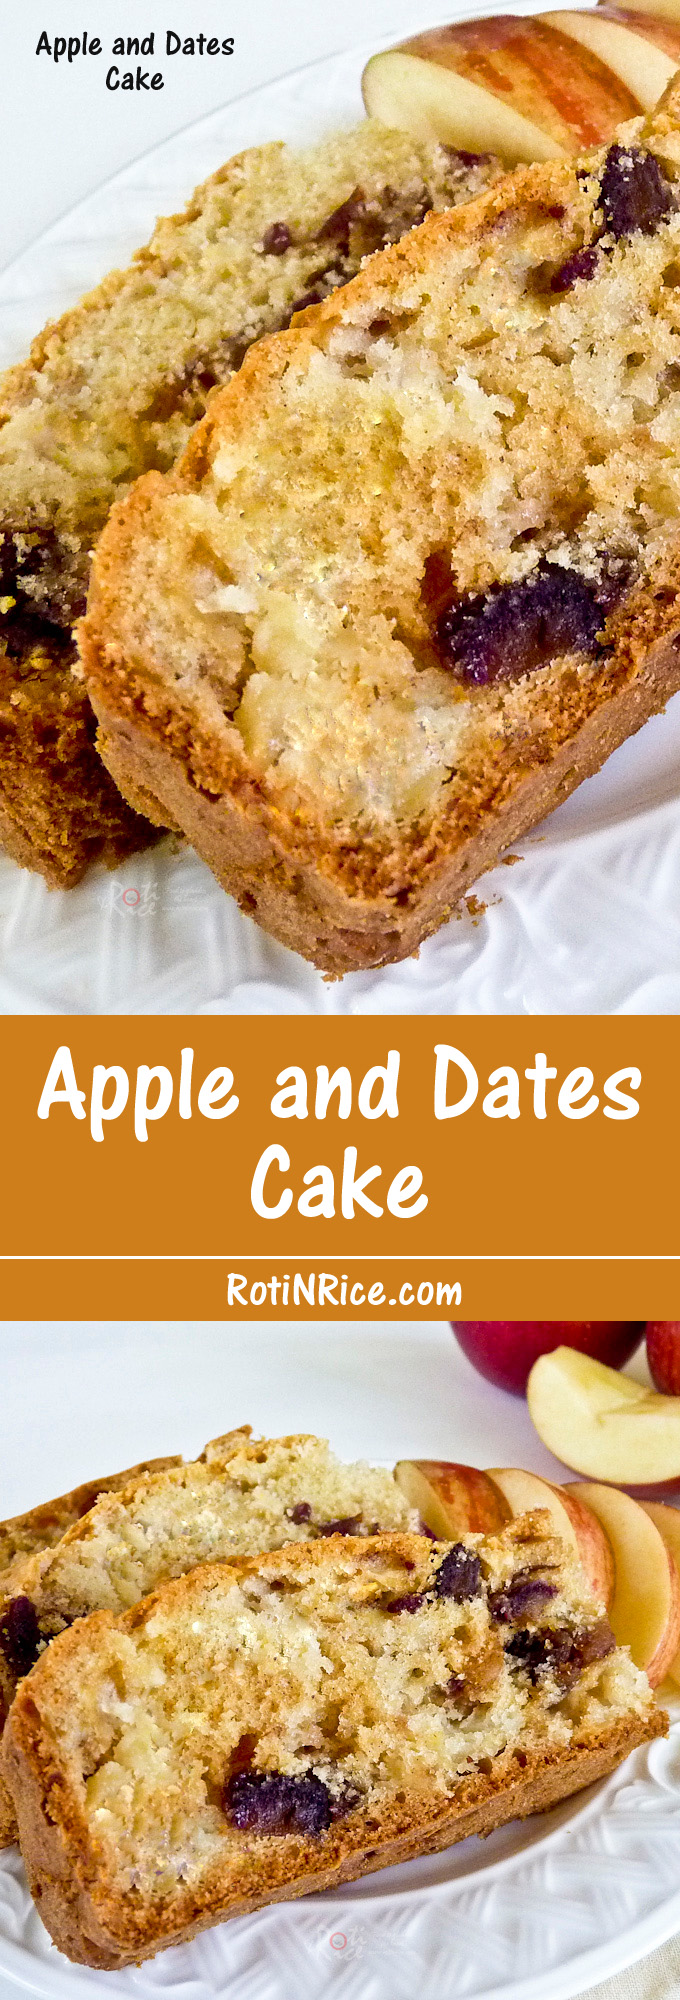 Use your favorite kind of apples and dates in this tender Apple and Dates Cake with vanilla extract for a sweet fragrance. | RotiNRice.com